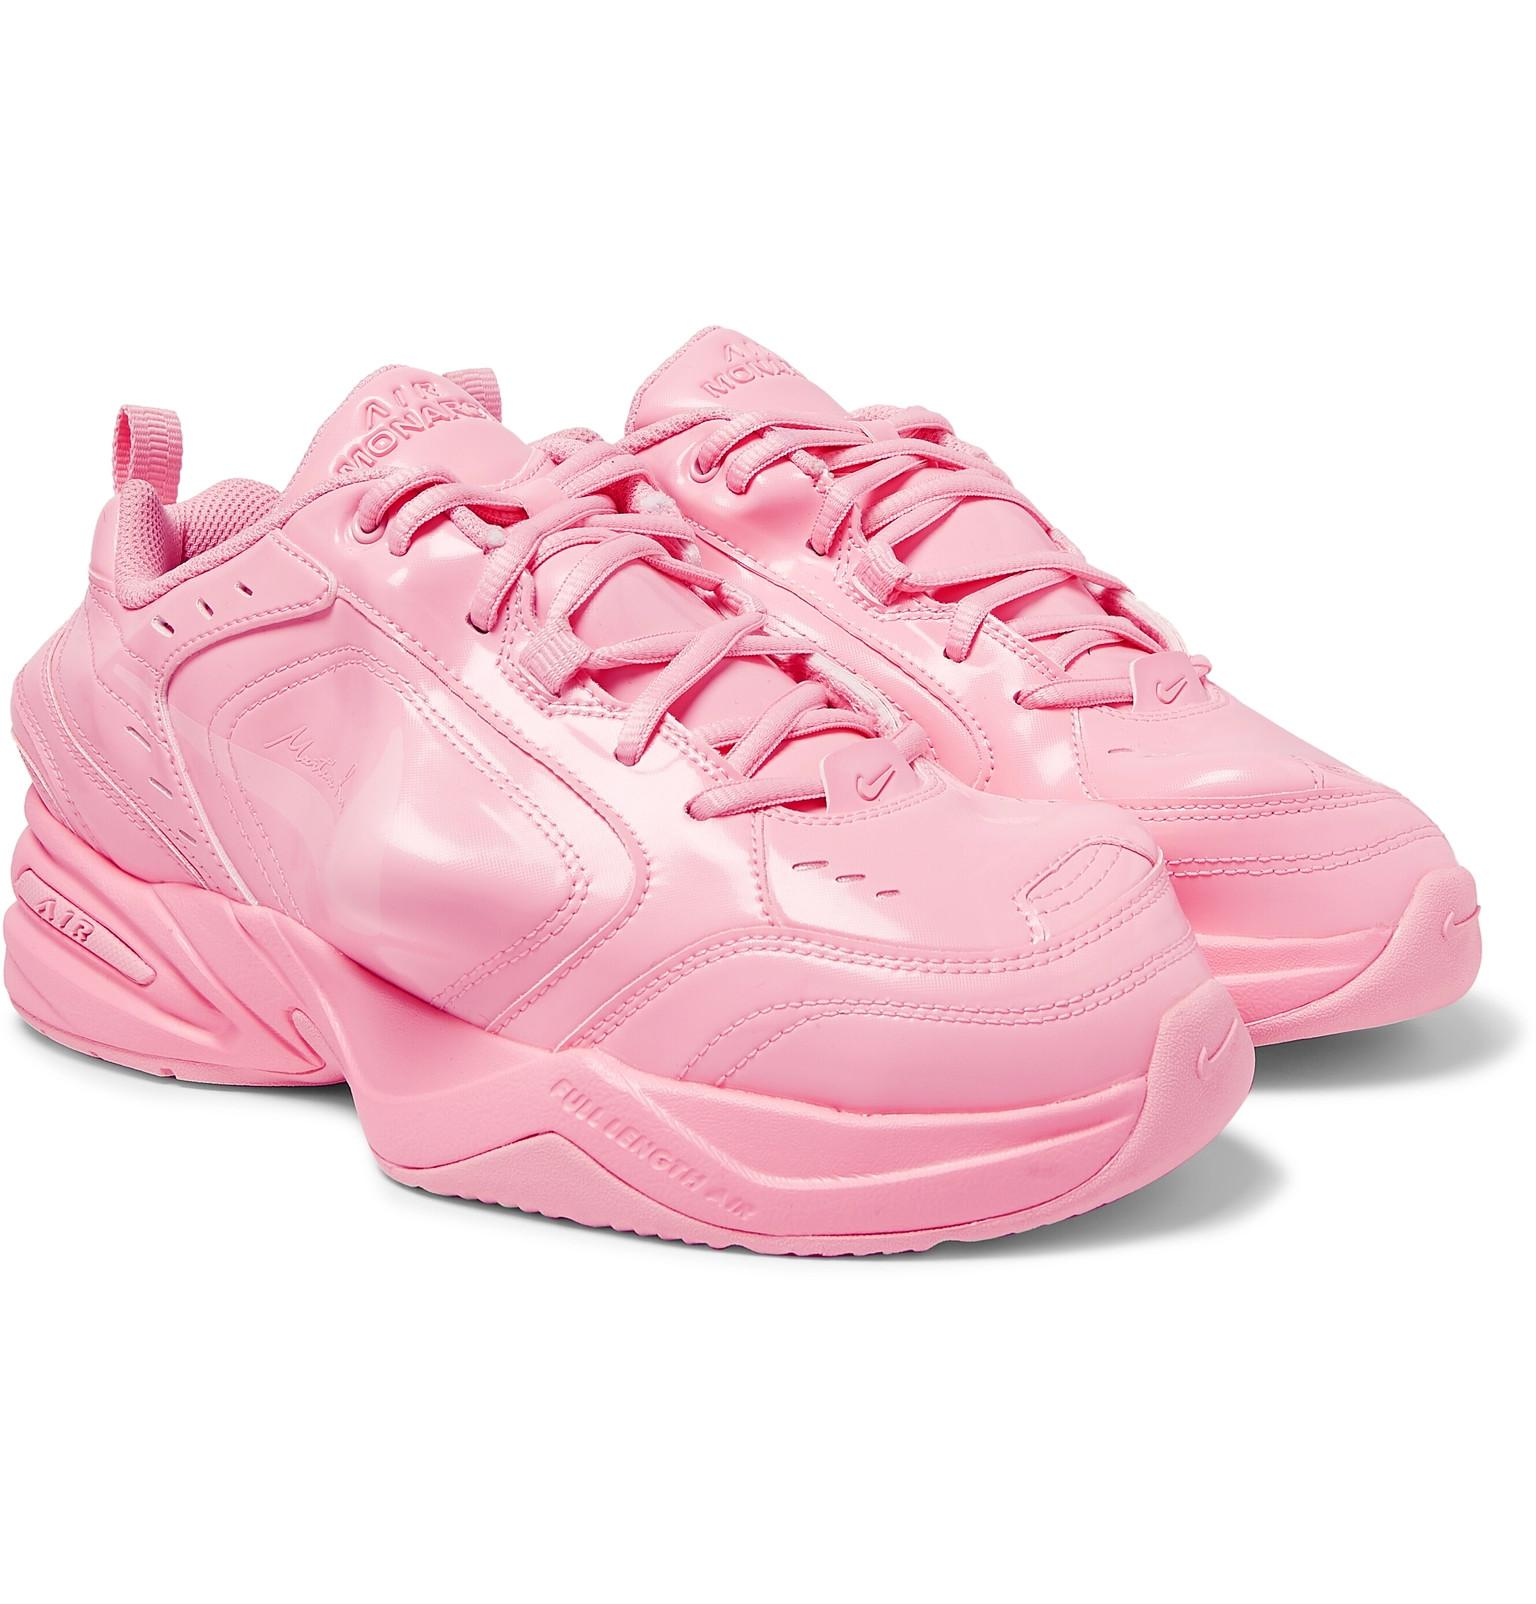 Nike. Men s Pink + Martine Rose Air Monarch Iv Faux Patent-leather And Pu  Trainers b5395bd43